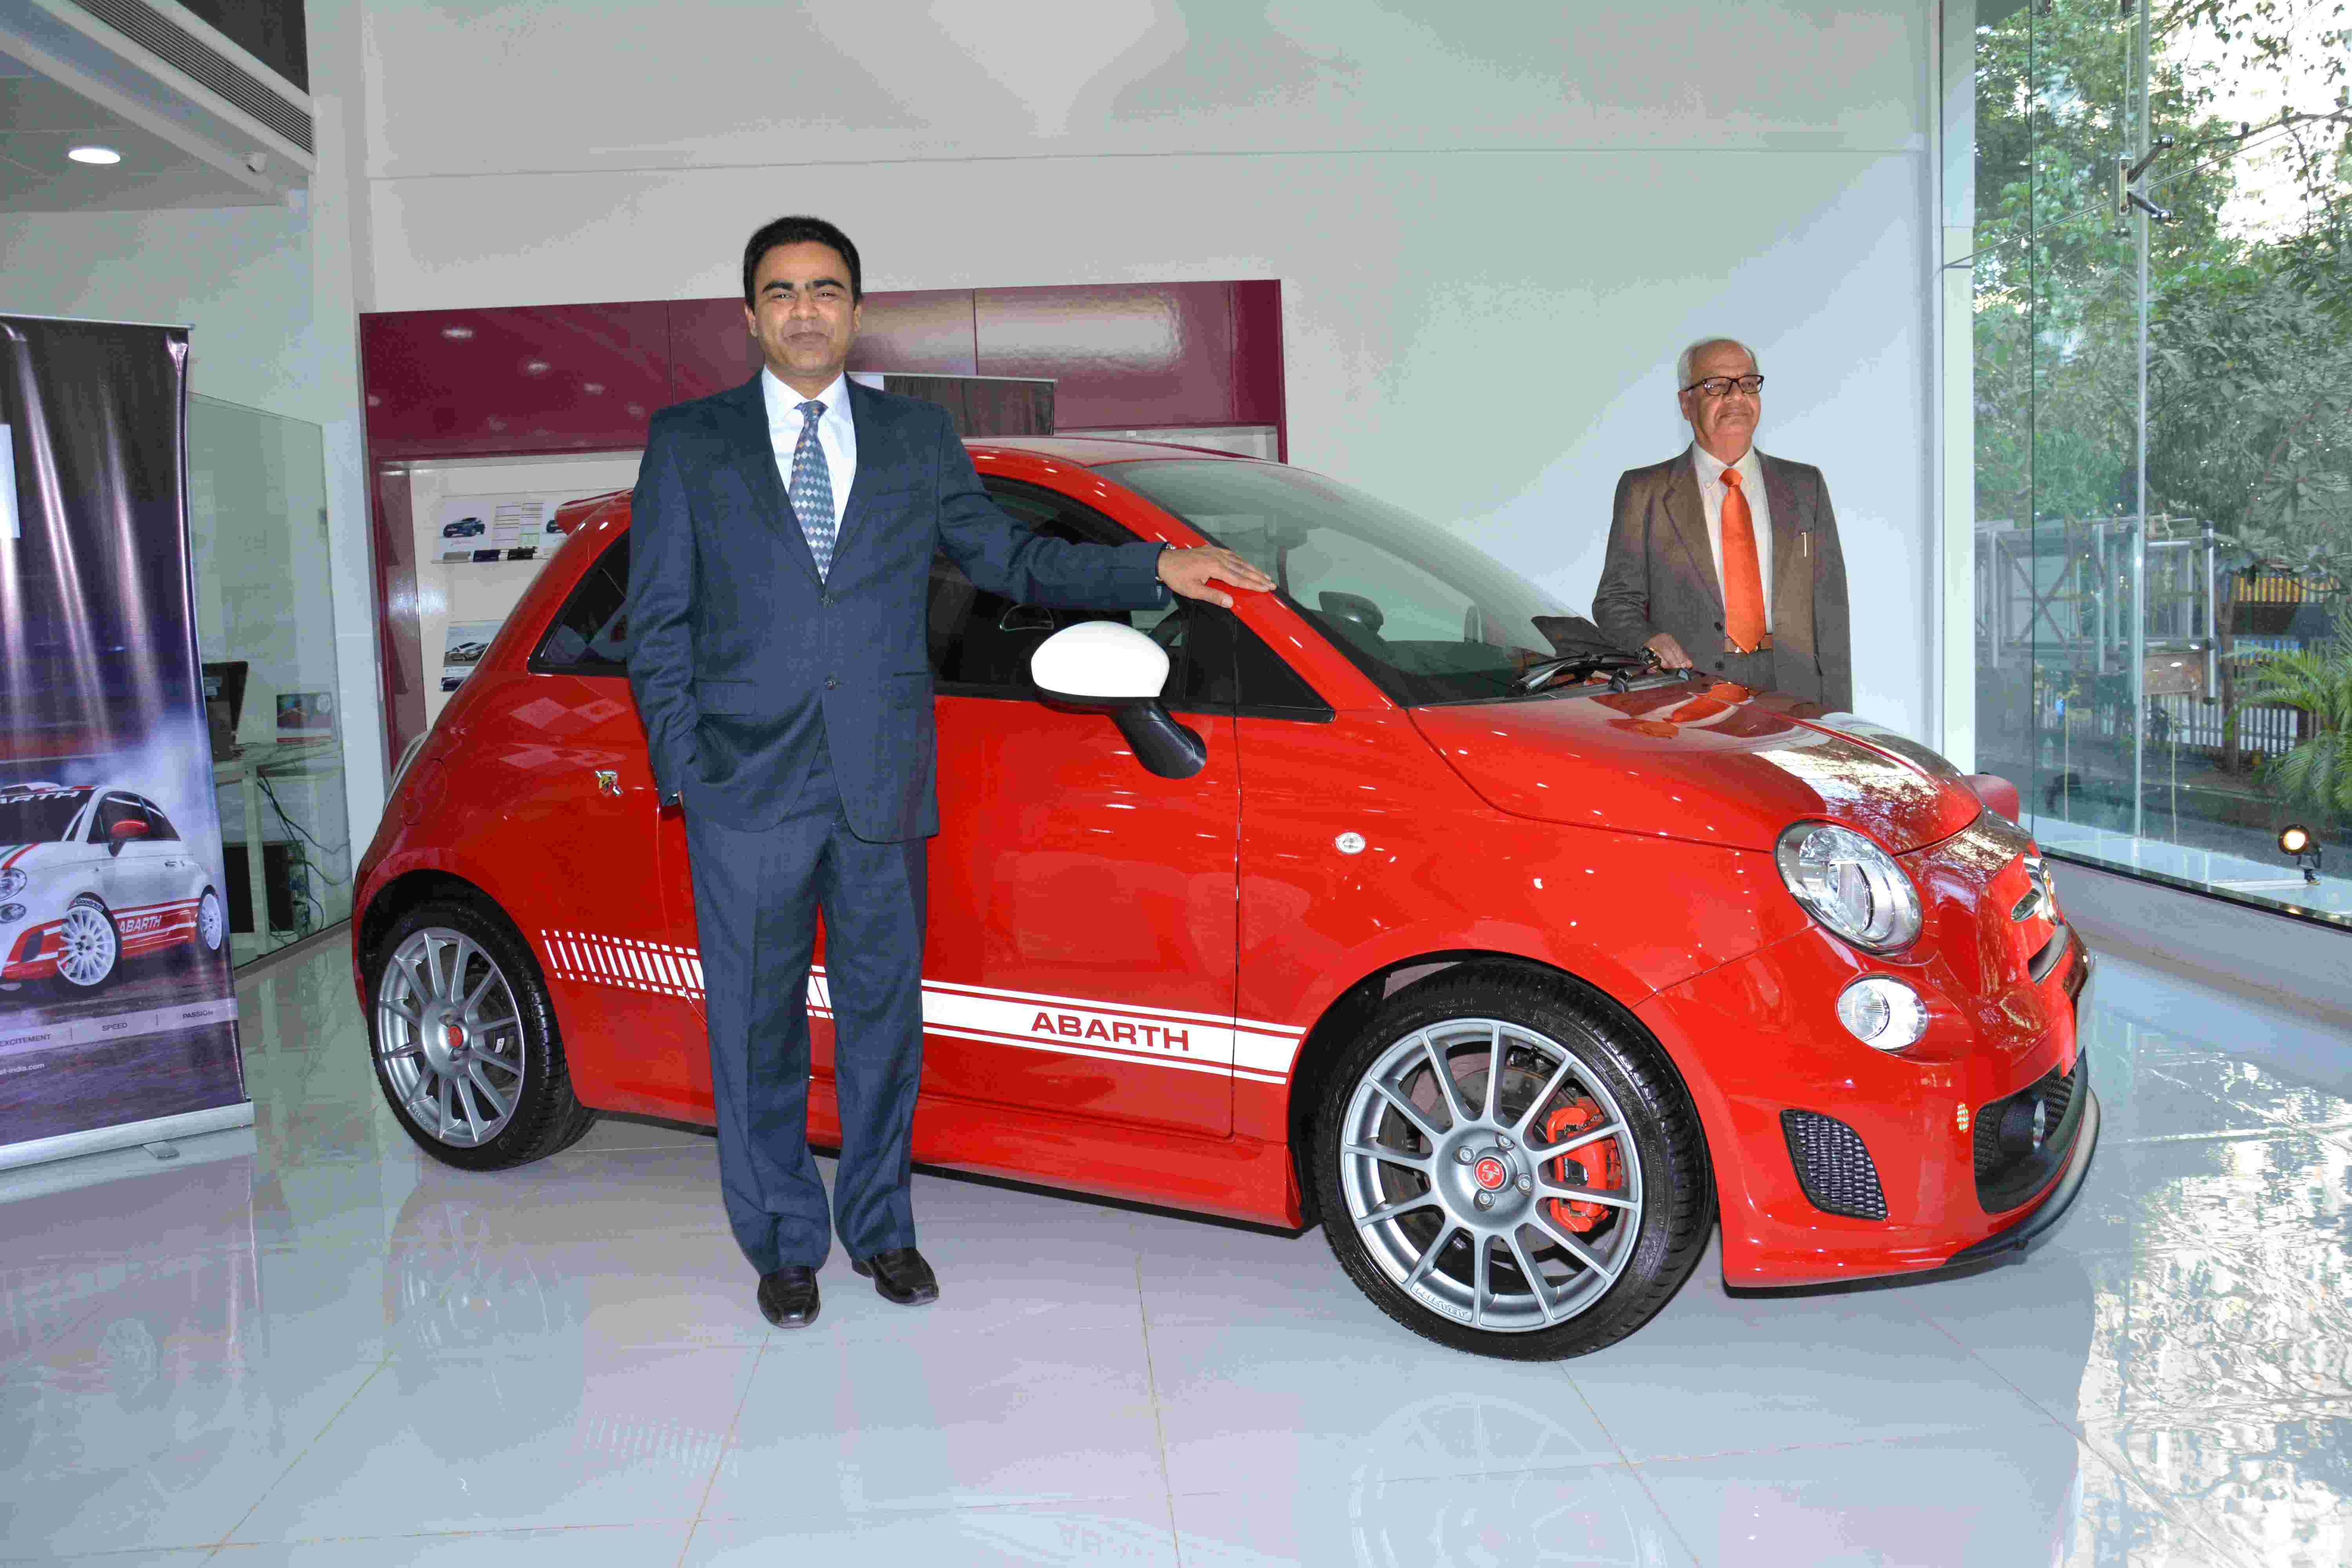 caign different meant of picture start company show campaign the type launches limited has ad auto to autonews types is a jpg sushmita automobiles kapoor completely fiat new rajeev india ltd sen president decided